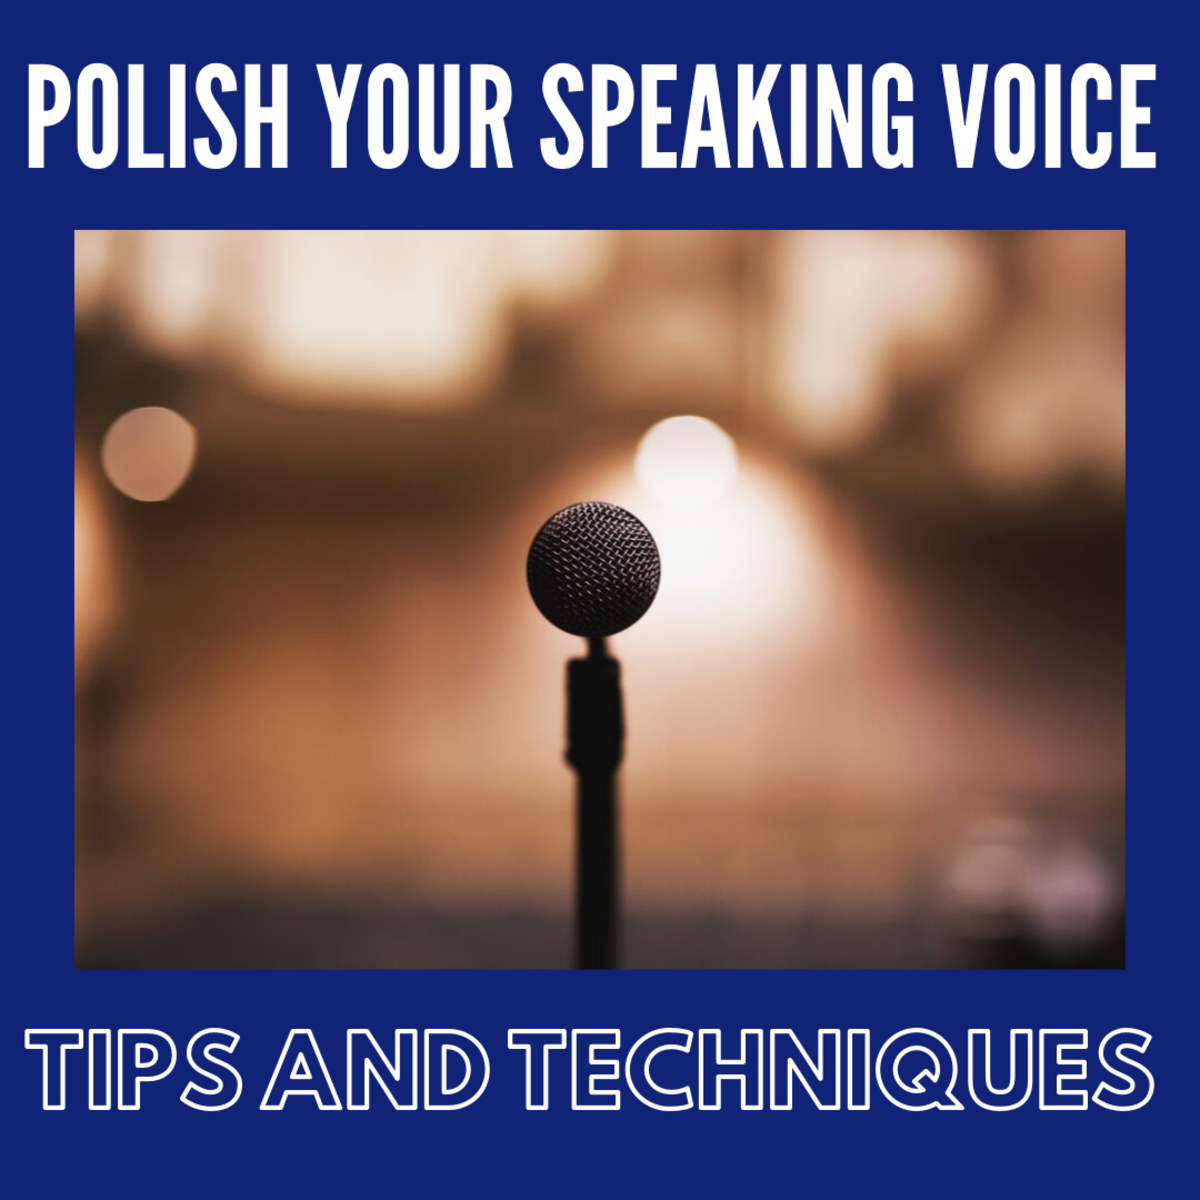 How to Polish Your Speaking Voice